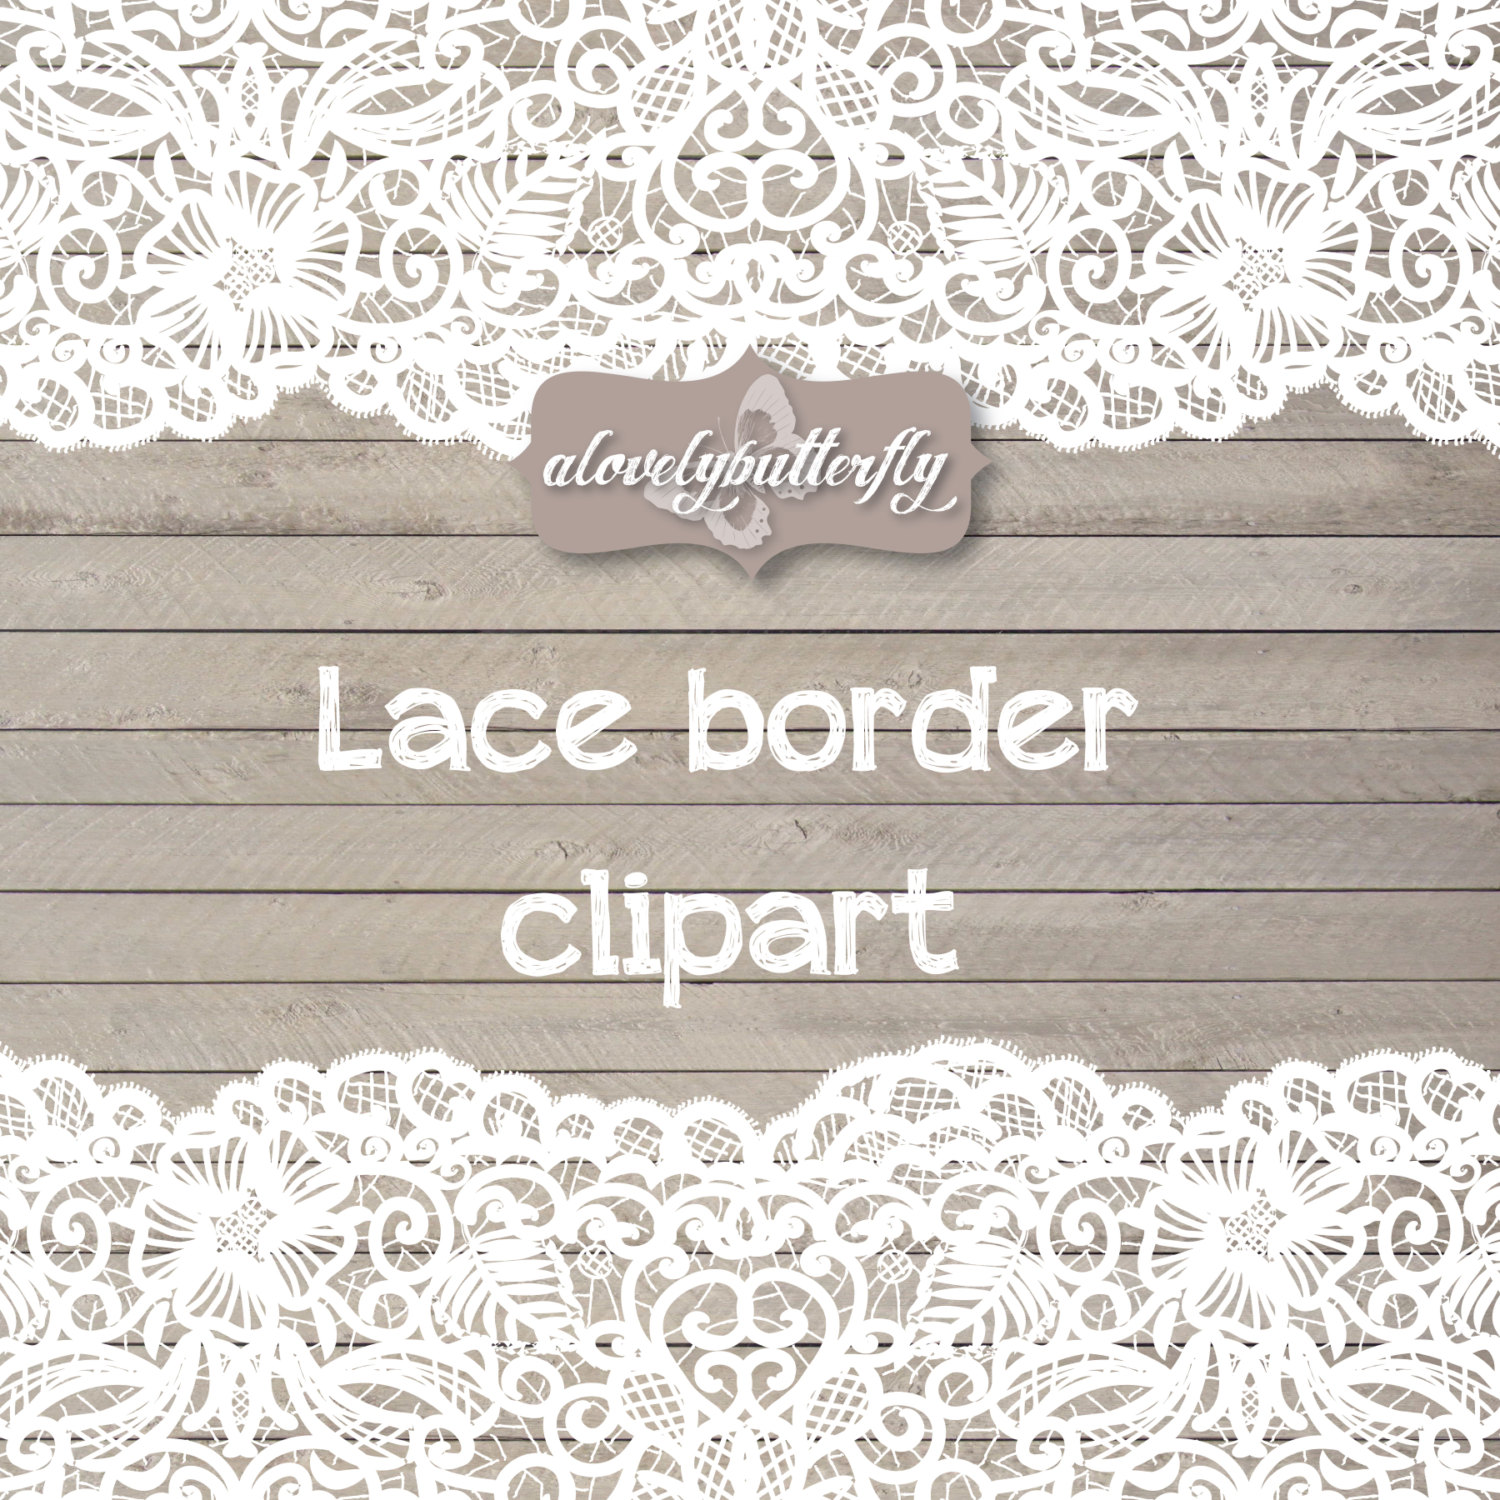 clip art freeuse Free trim cliparts download. Lace border clipart